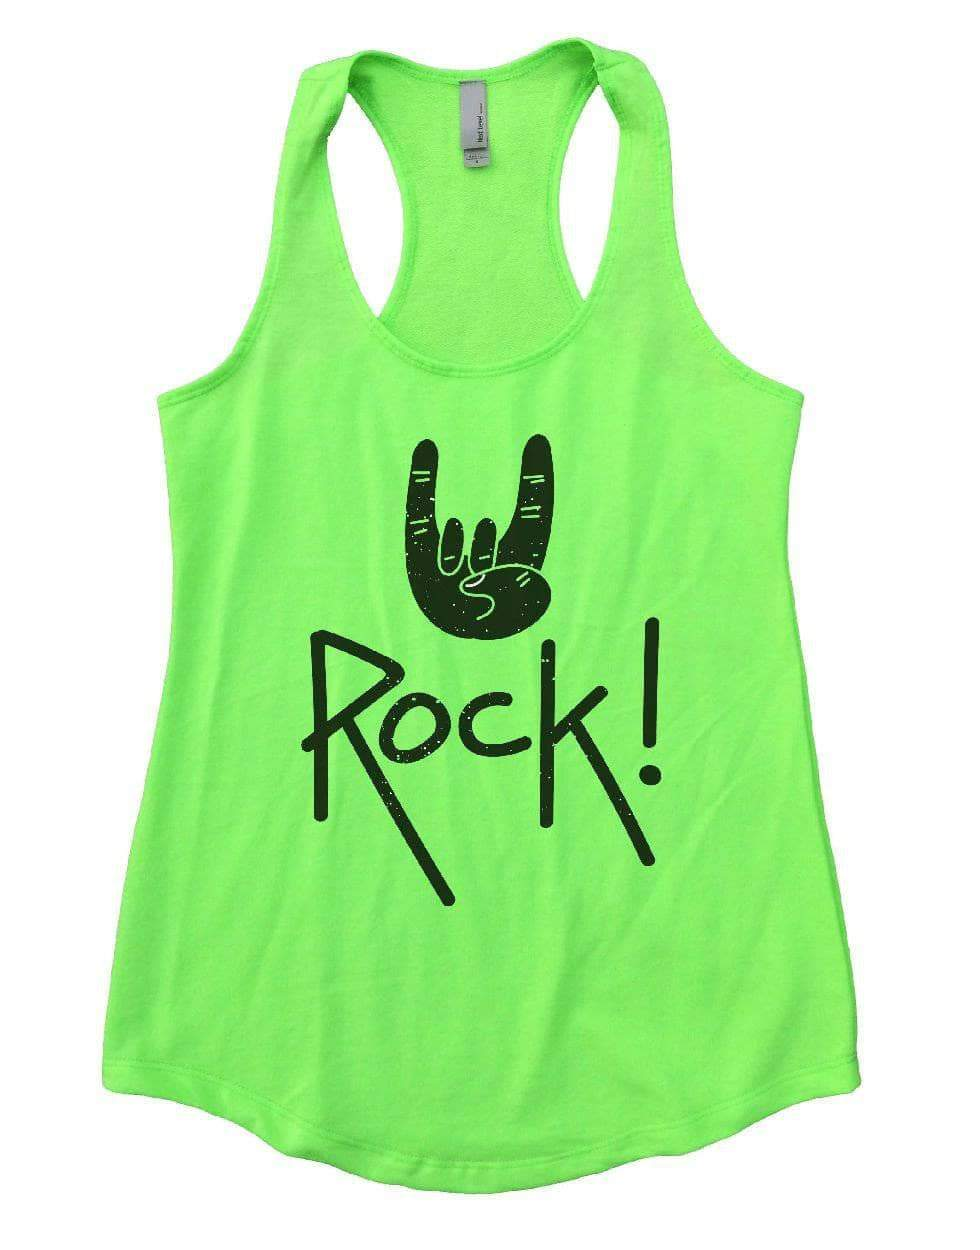 Rock On Womens Workout Tank Top Small Womens Tank Tops Neon Green